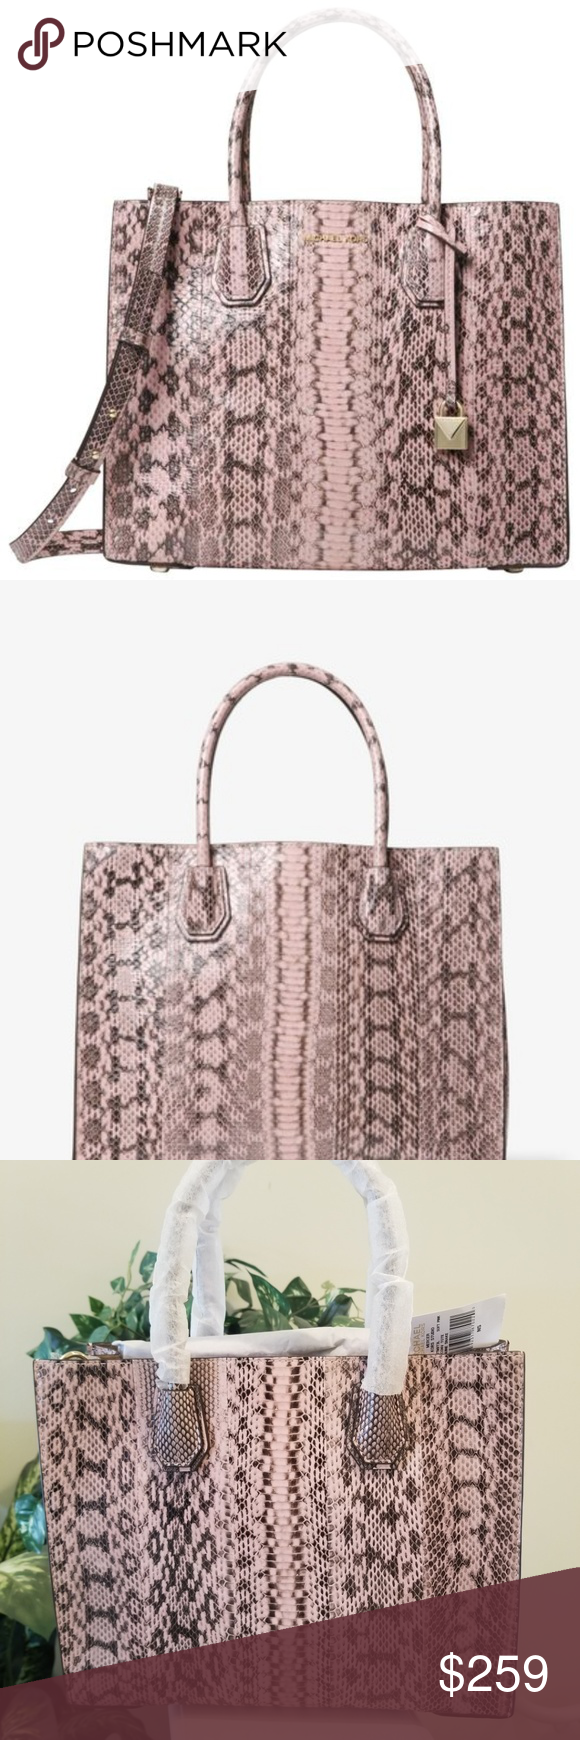 9cdc750f322c6c NWT Michael Kors Mercer Large Snakeskin Pink Tote Gorgeous and rare Michael  Kors Mercer Large Snakeskin